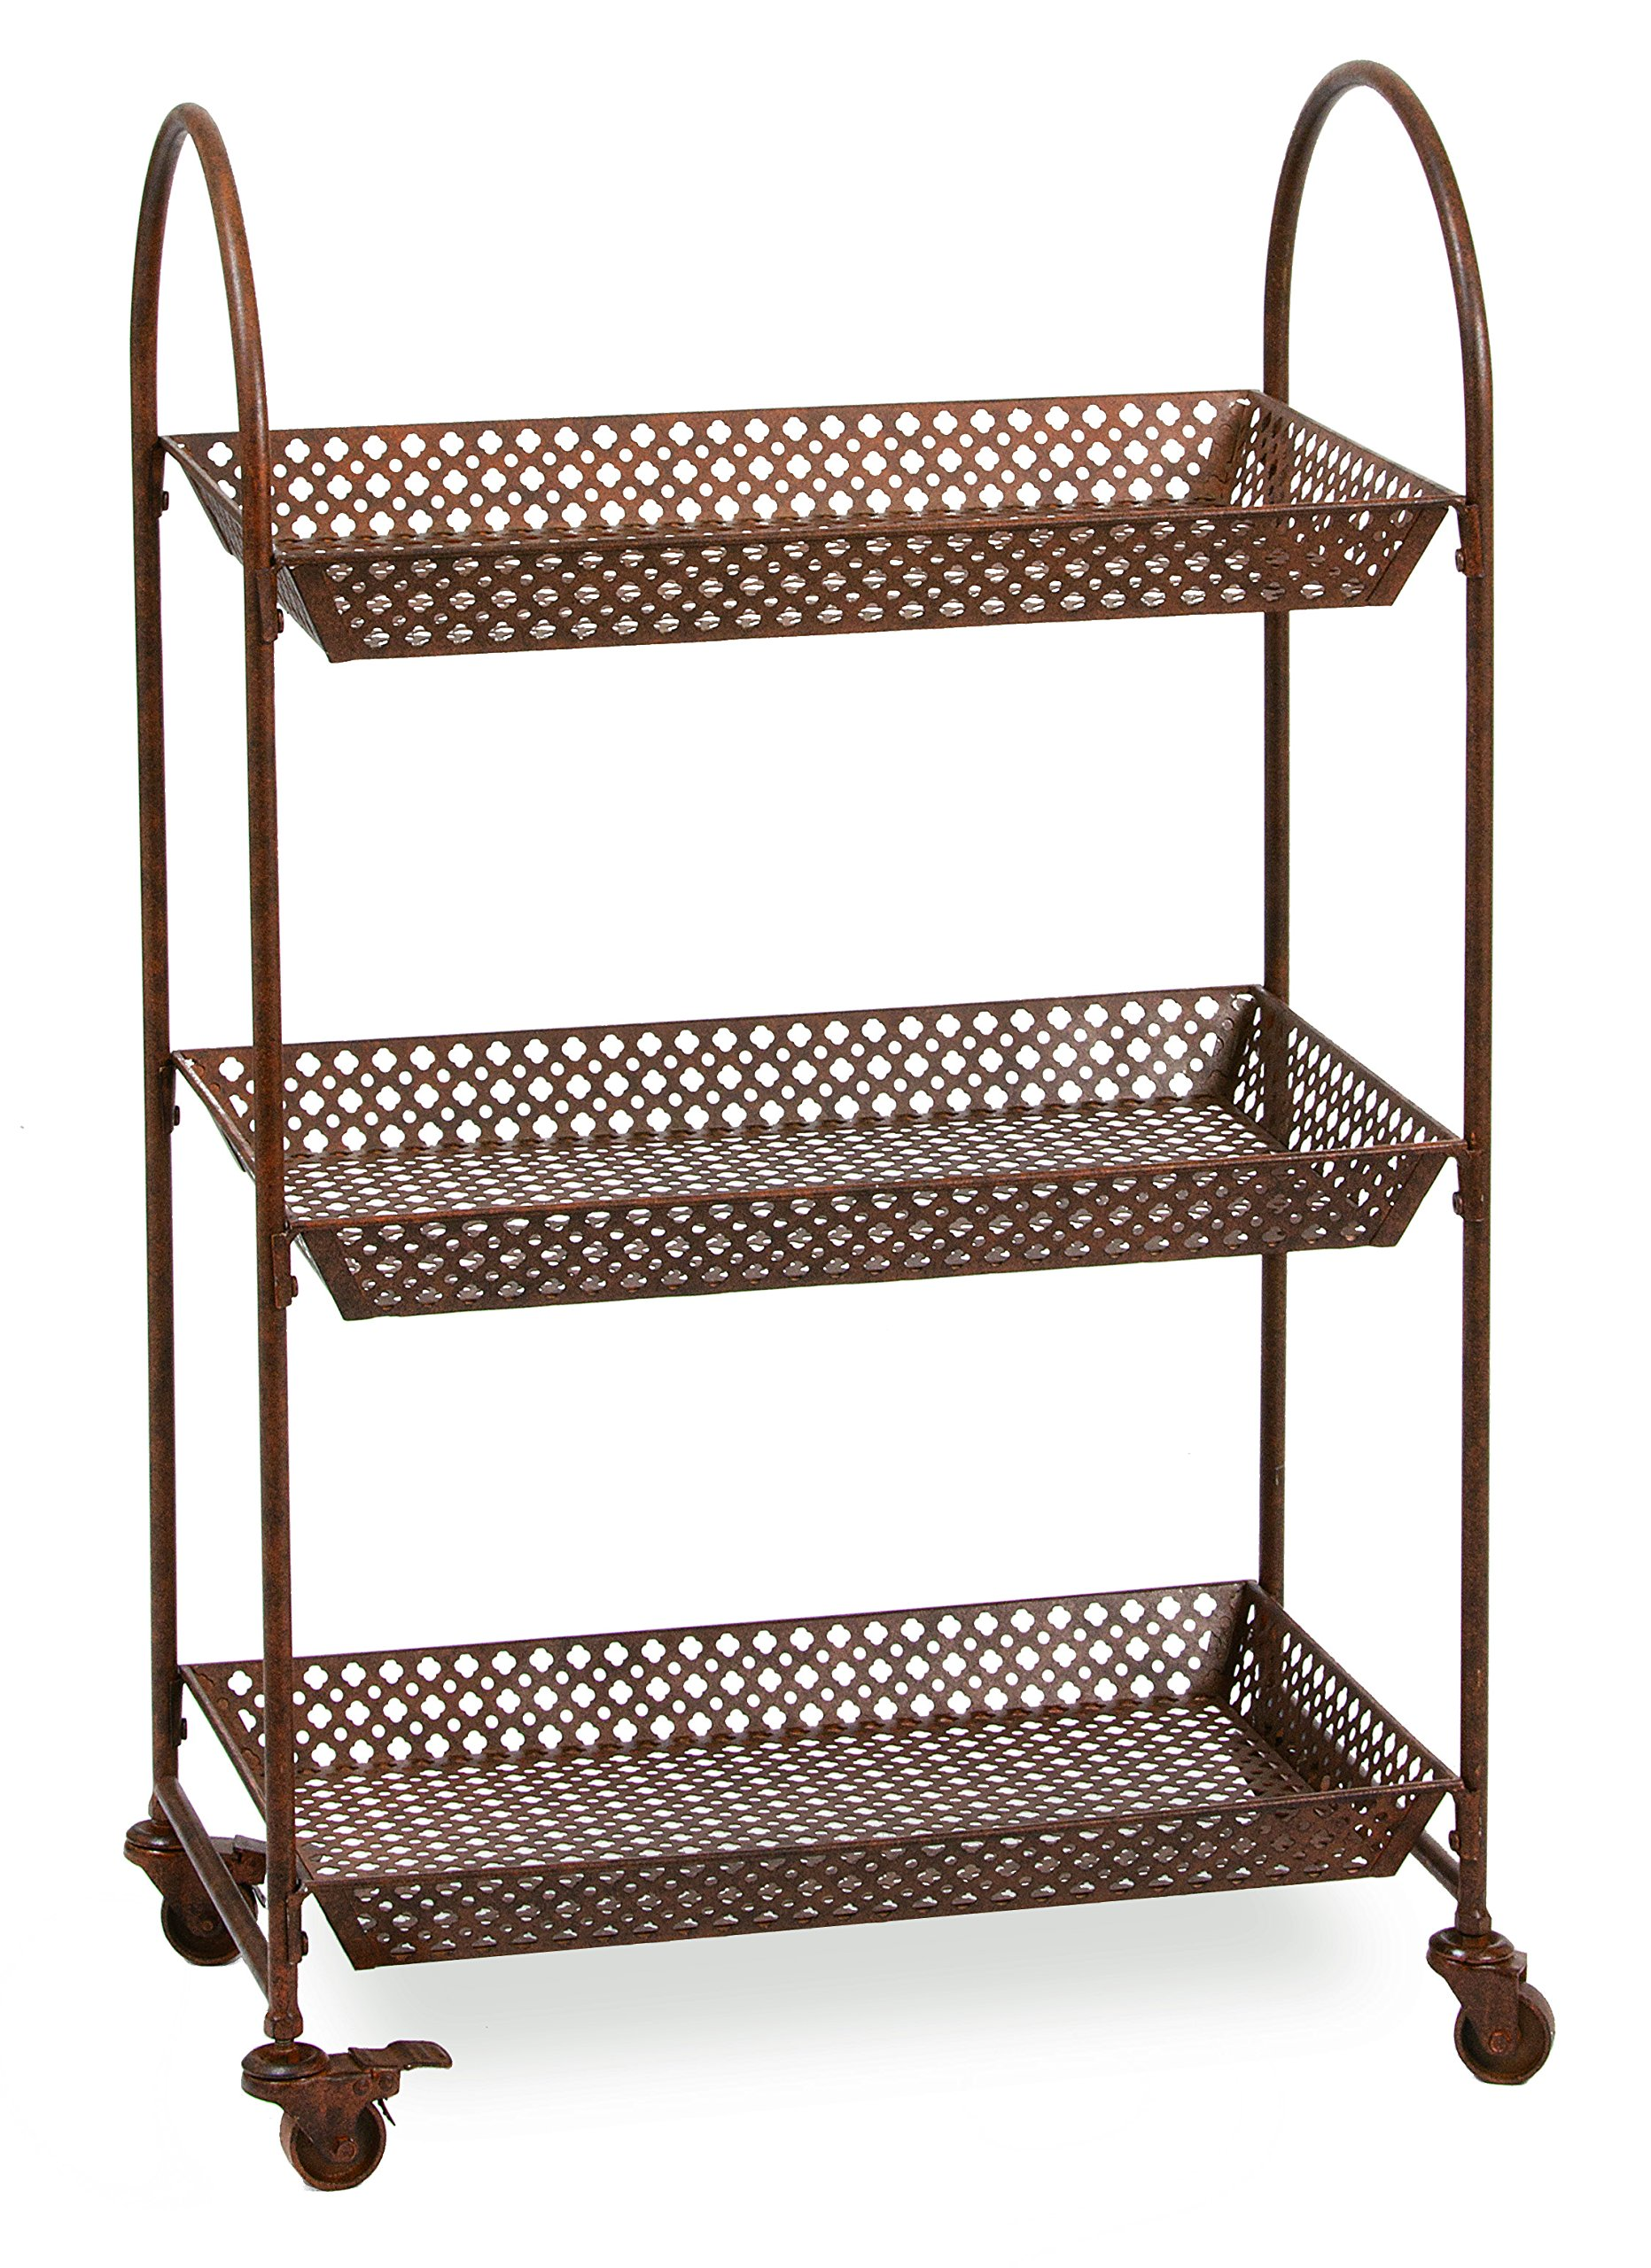 Deer Park Ironworks TC109 Rolling 3 Tier Cart with locking wheels, 24''L x 14''D x 38''H, Natural Patina by Deer Park Ironworks